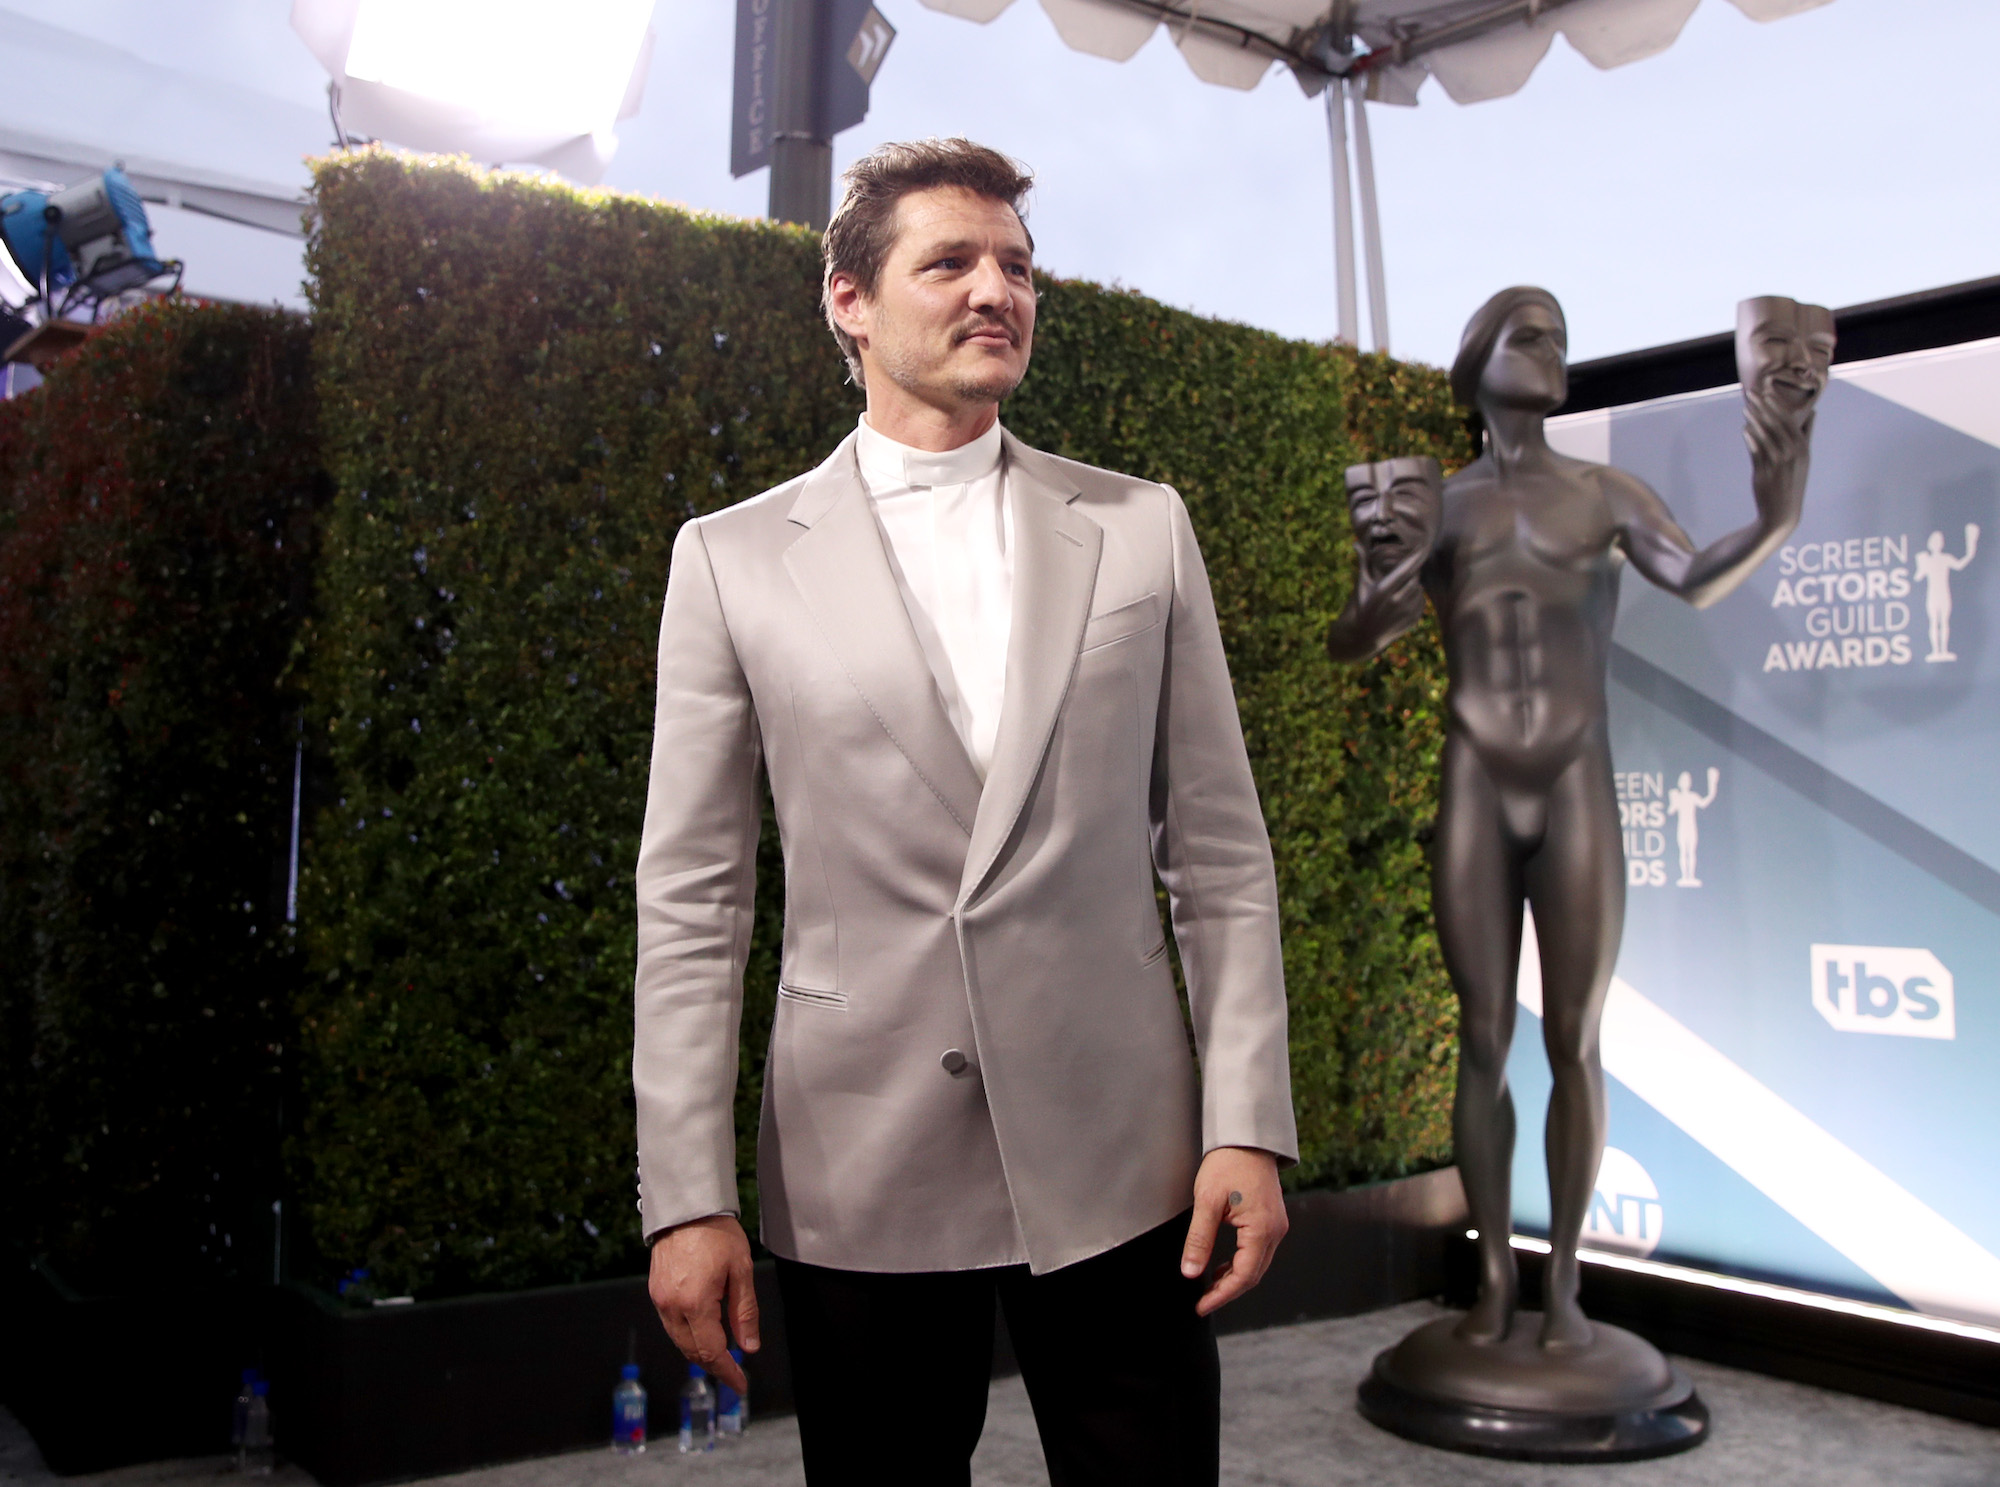 Pedro Pascal at the 26th Annual Screen Actors Guild Awards at The Shrine Auditorium on January 19, 2020 in Los Angeles, California